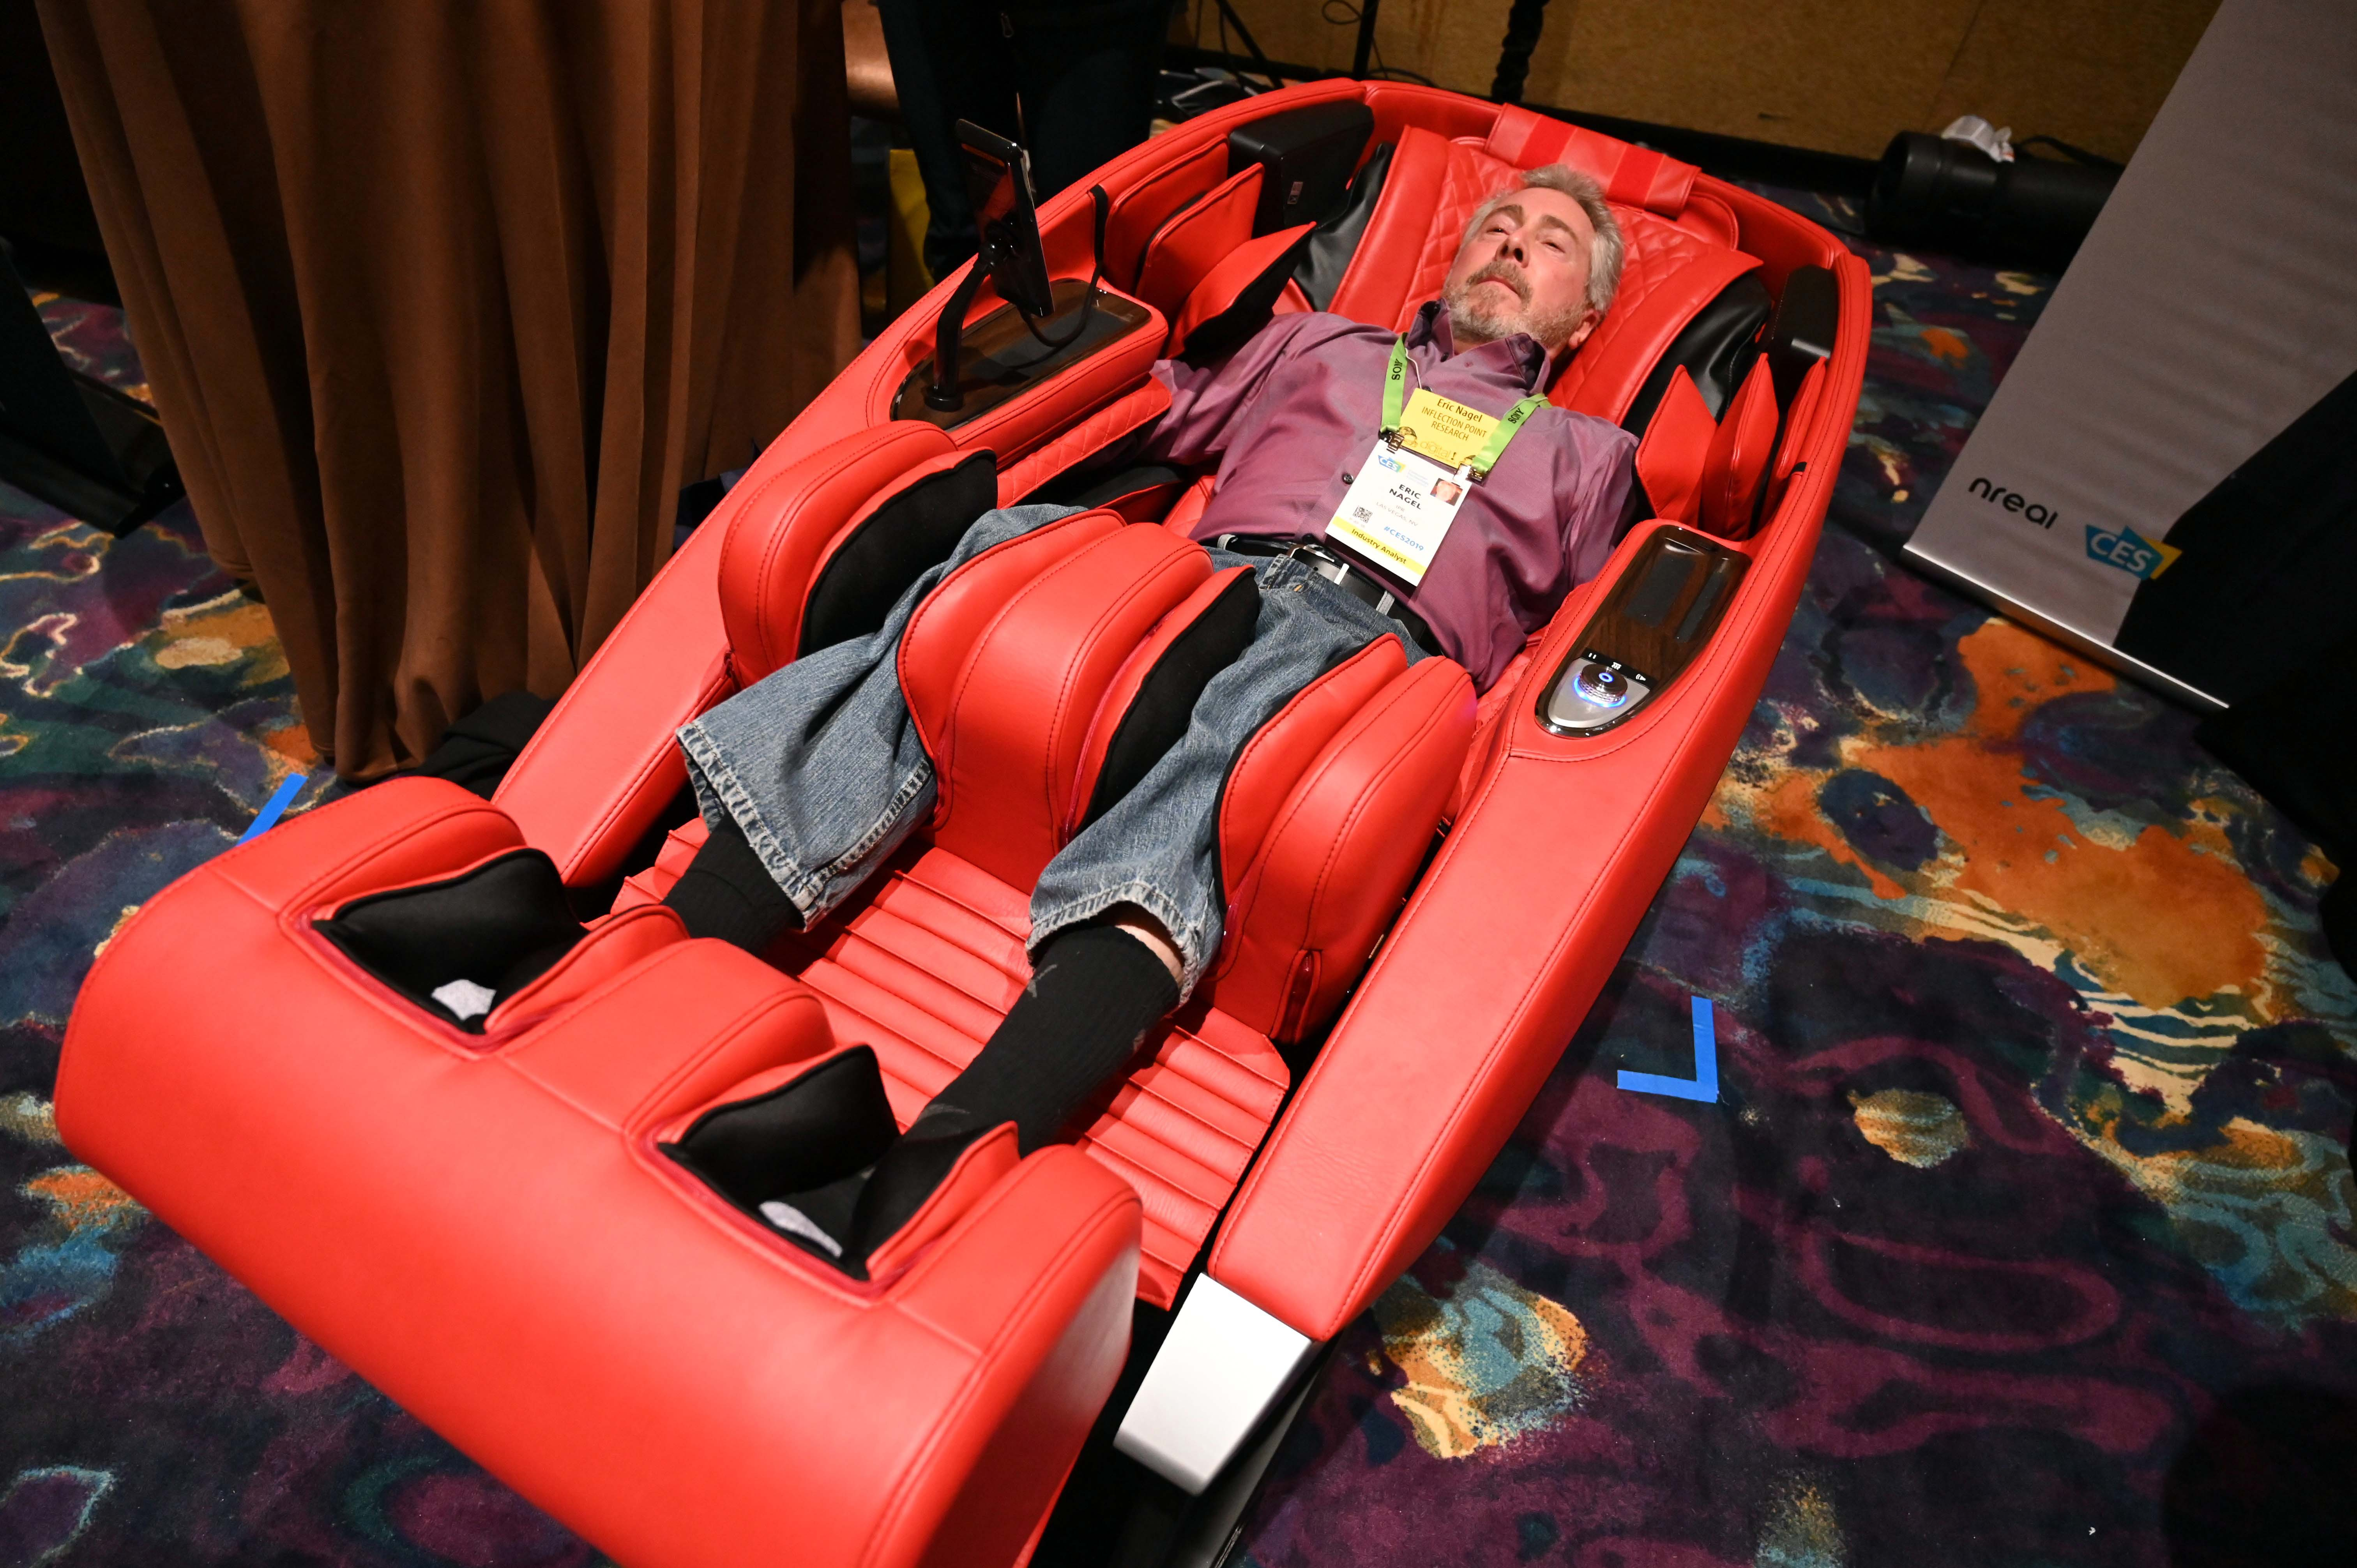 A $10K massage chair? Here are some cool things we're seeing at CES